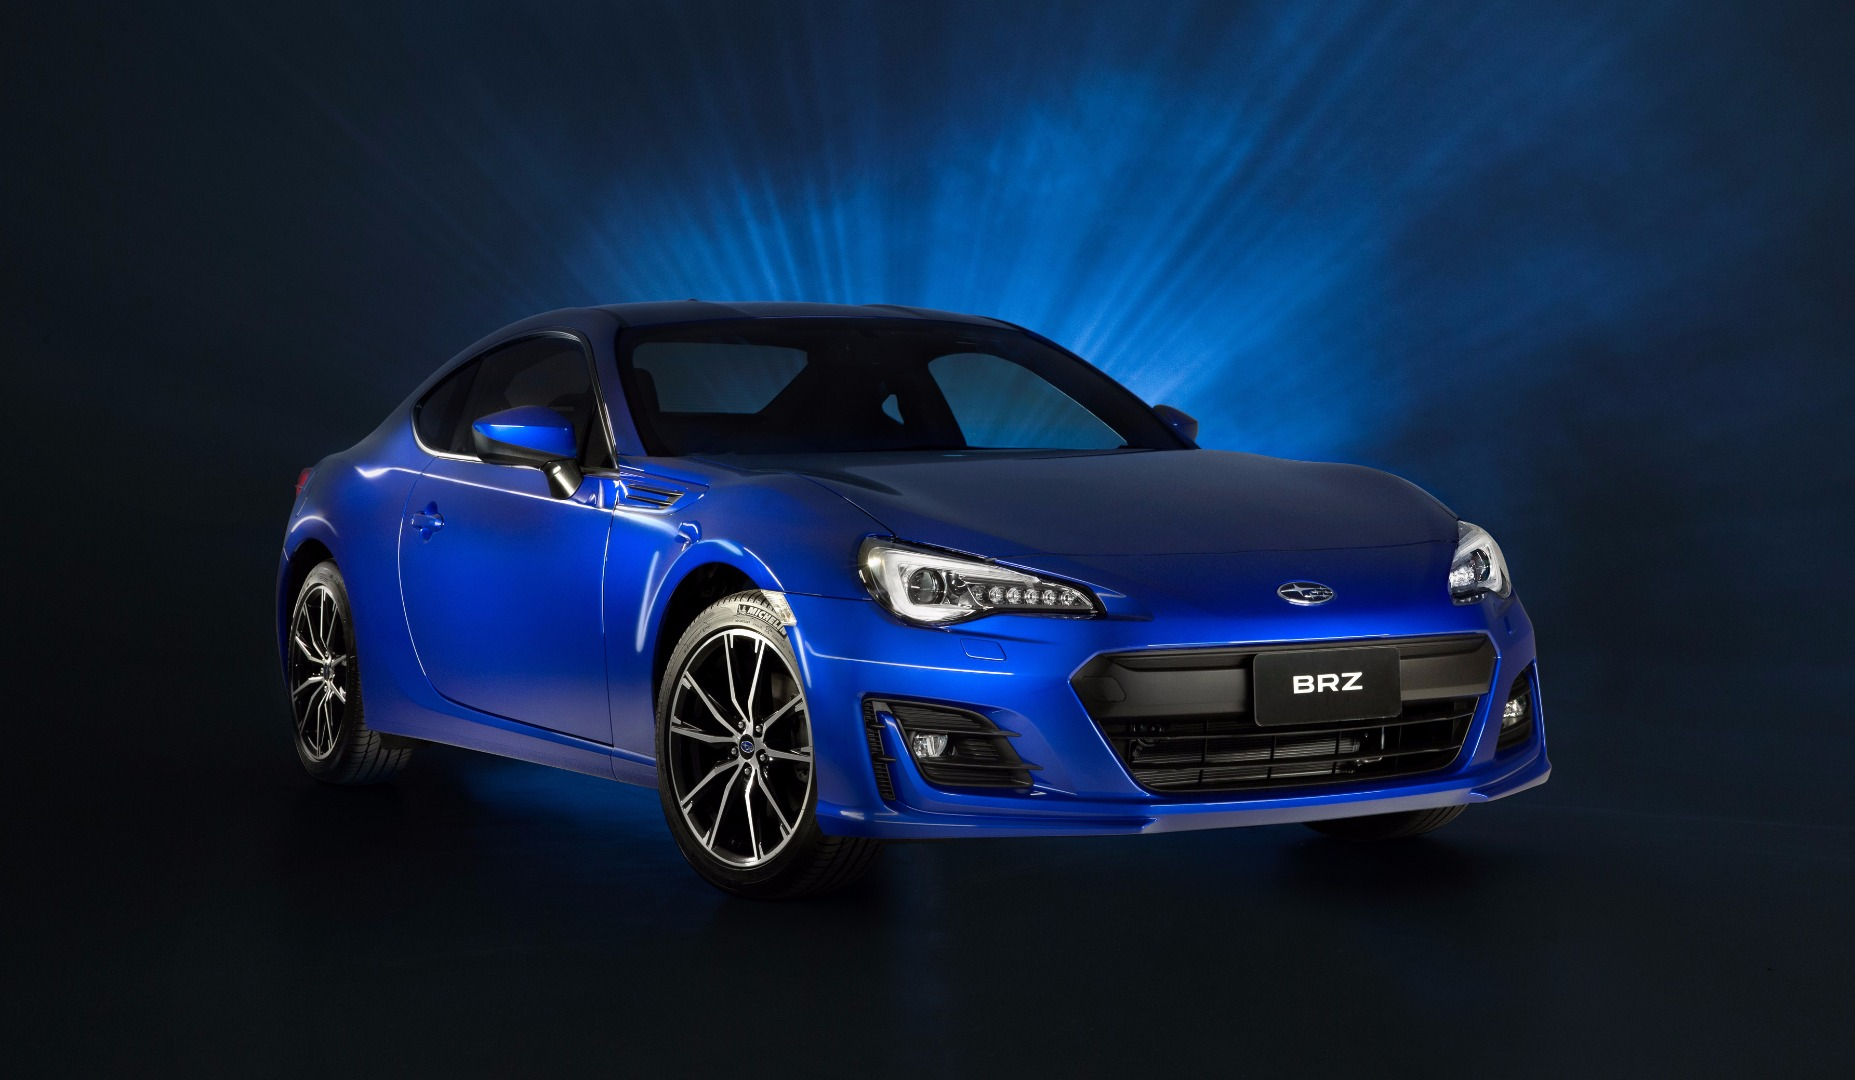 News - Subaru Australia Announces 2017 BRZ Coupe Starting At $33k